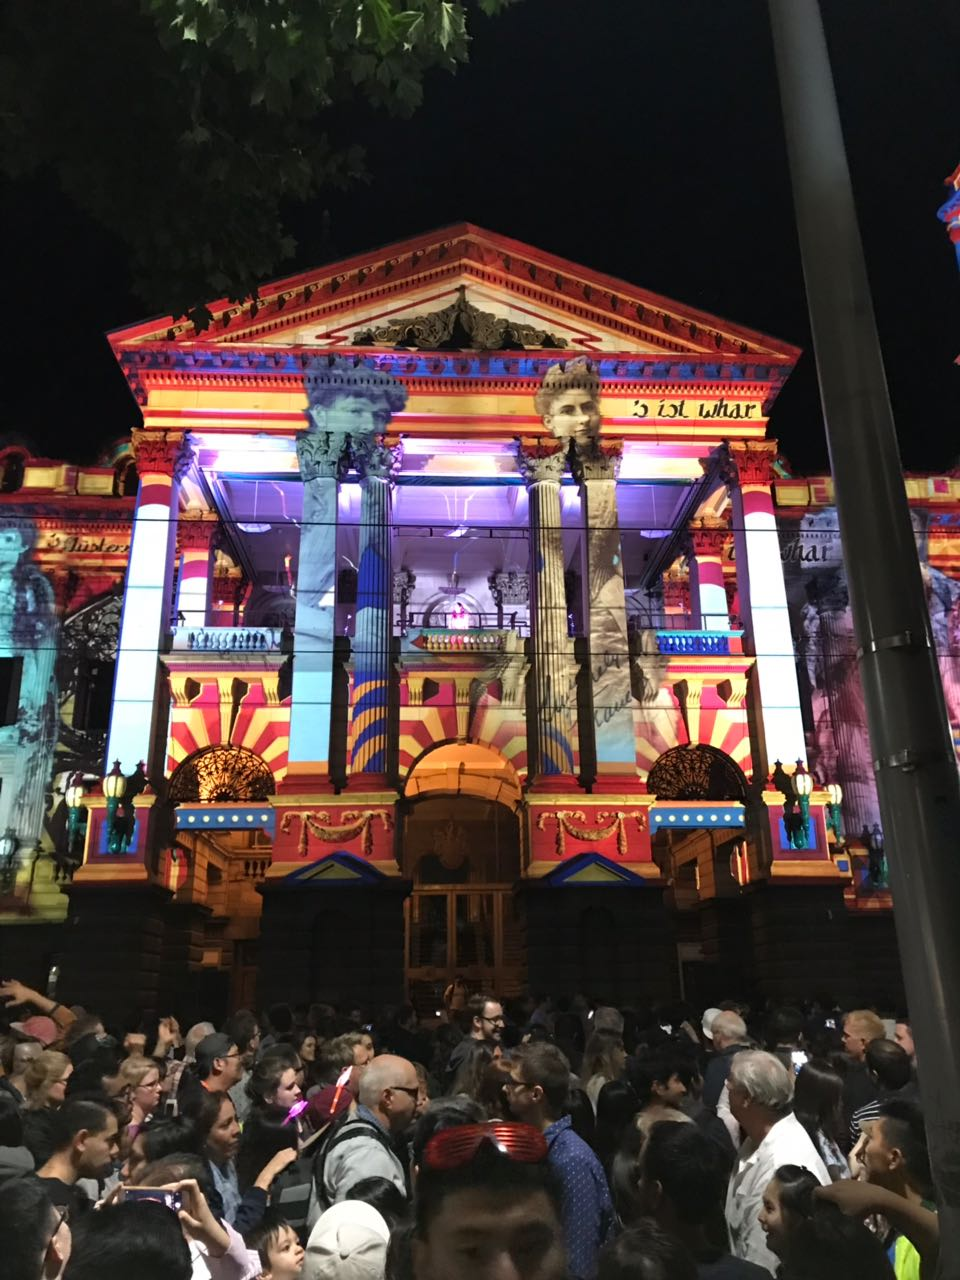 Melbourne Festival of Light 2018